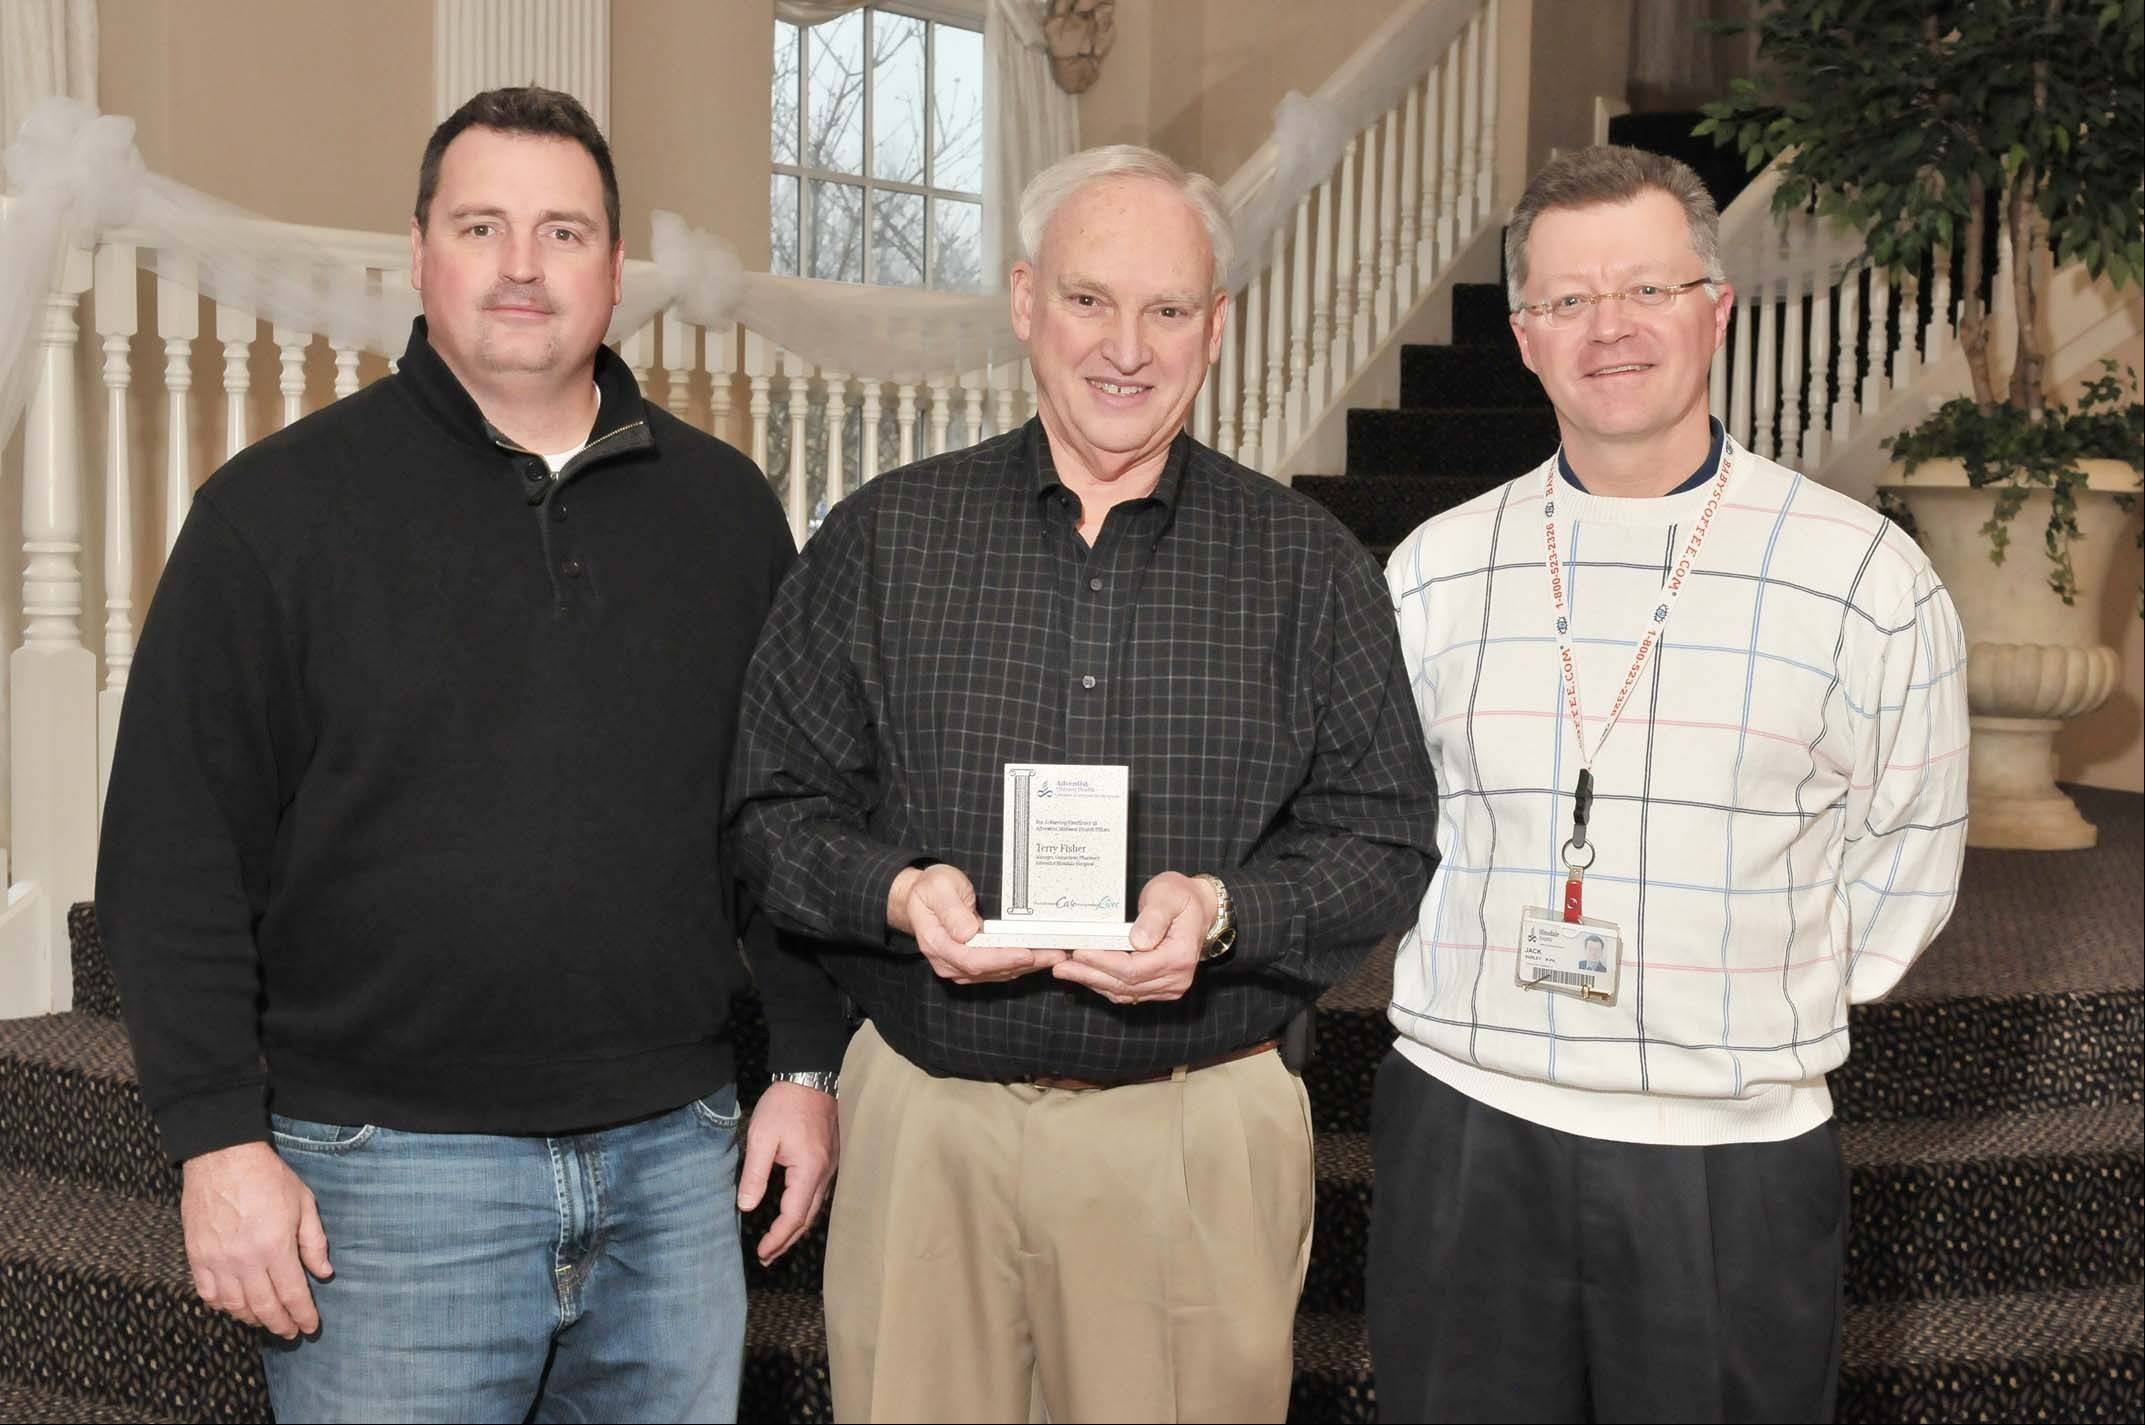 Terry Fisher, center, is pictured with, from left, Frank Johnson, interim chief operating officer of Adventist Hinsdale Hospital, and Jack Durley, director of the pharmacy at Adventist Hinsdale Hospital.